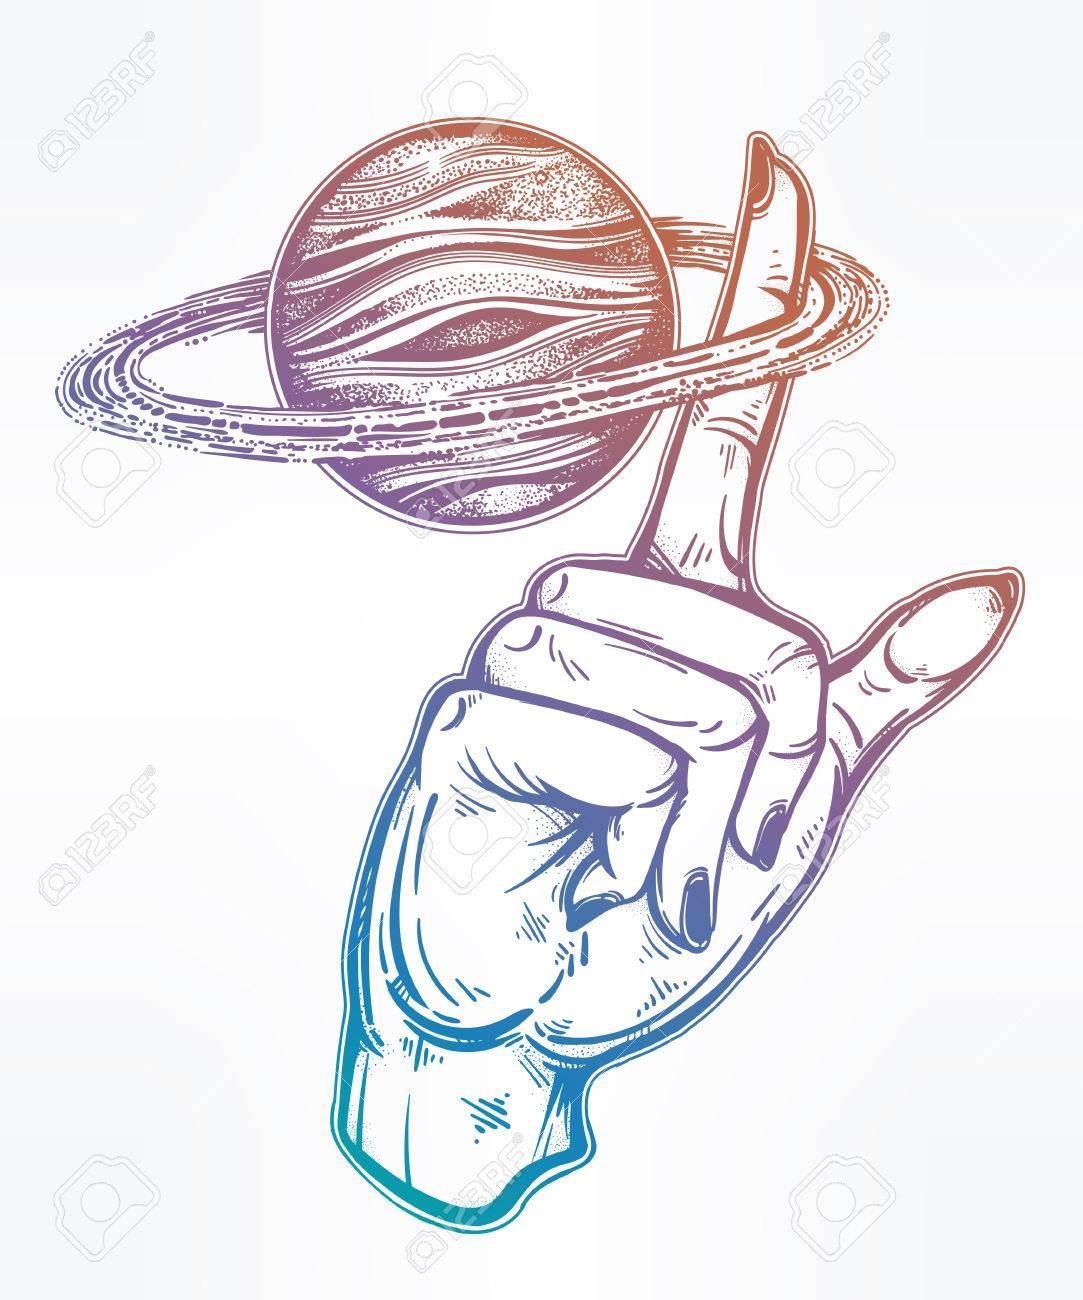 Astronomy clipart saturn. Planet drawing at getdrawings